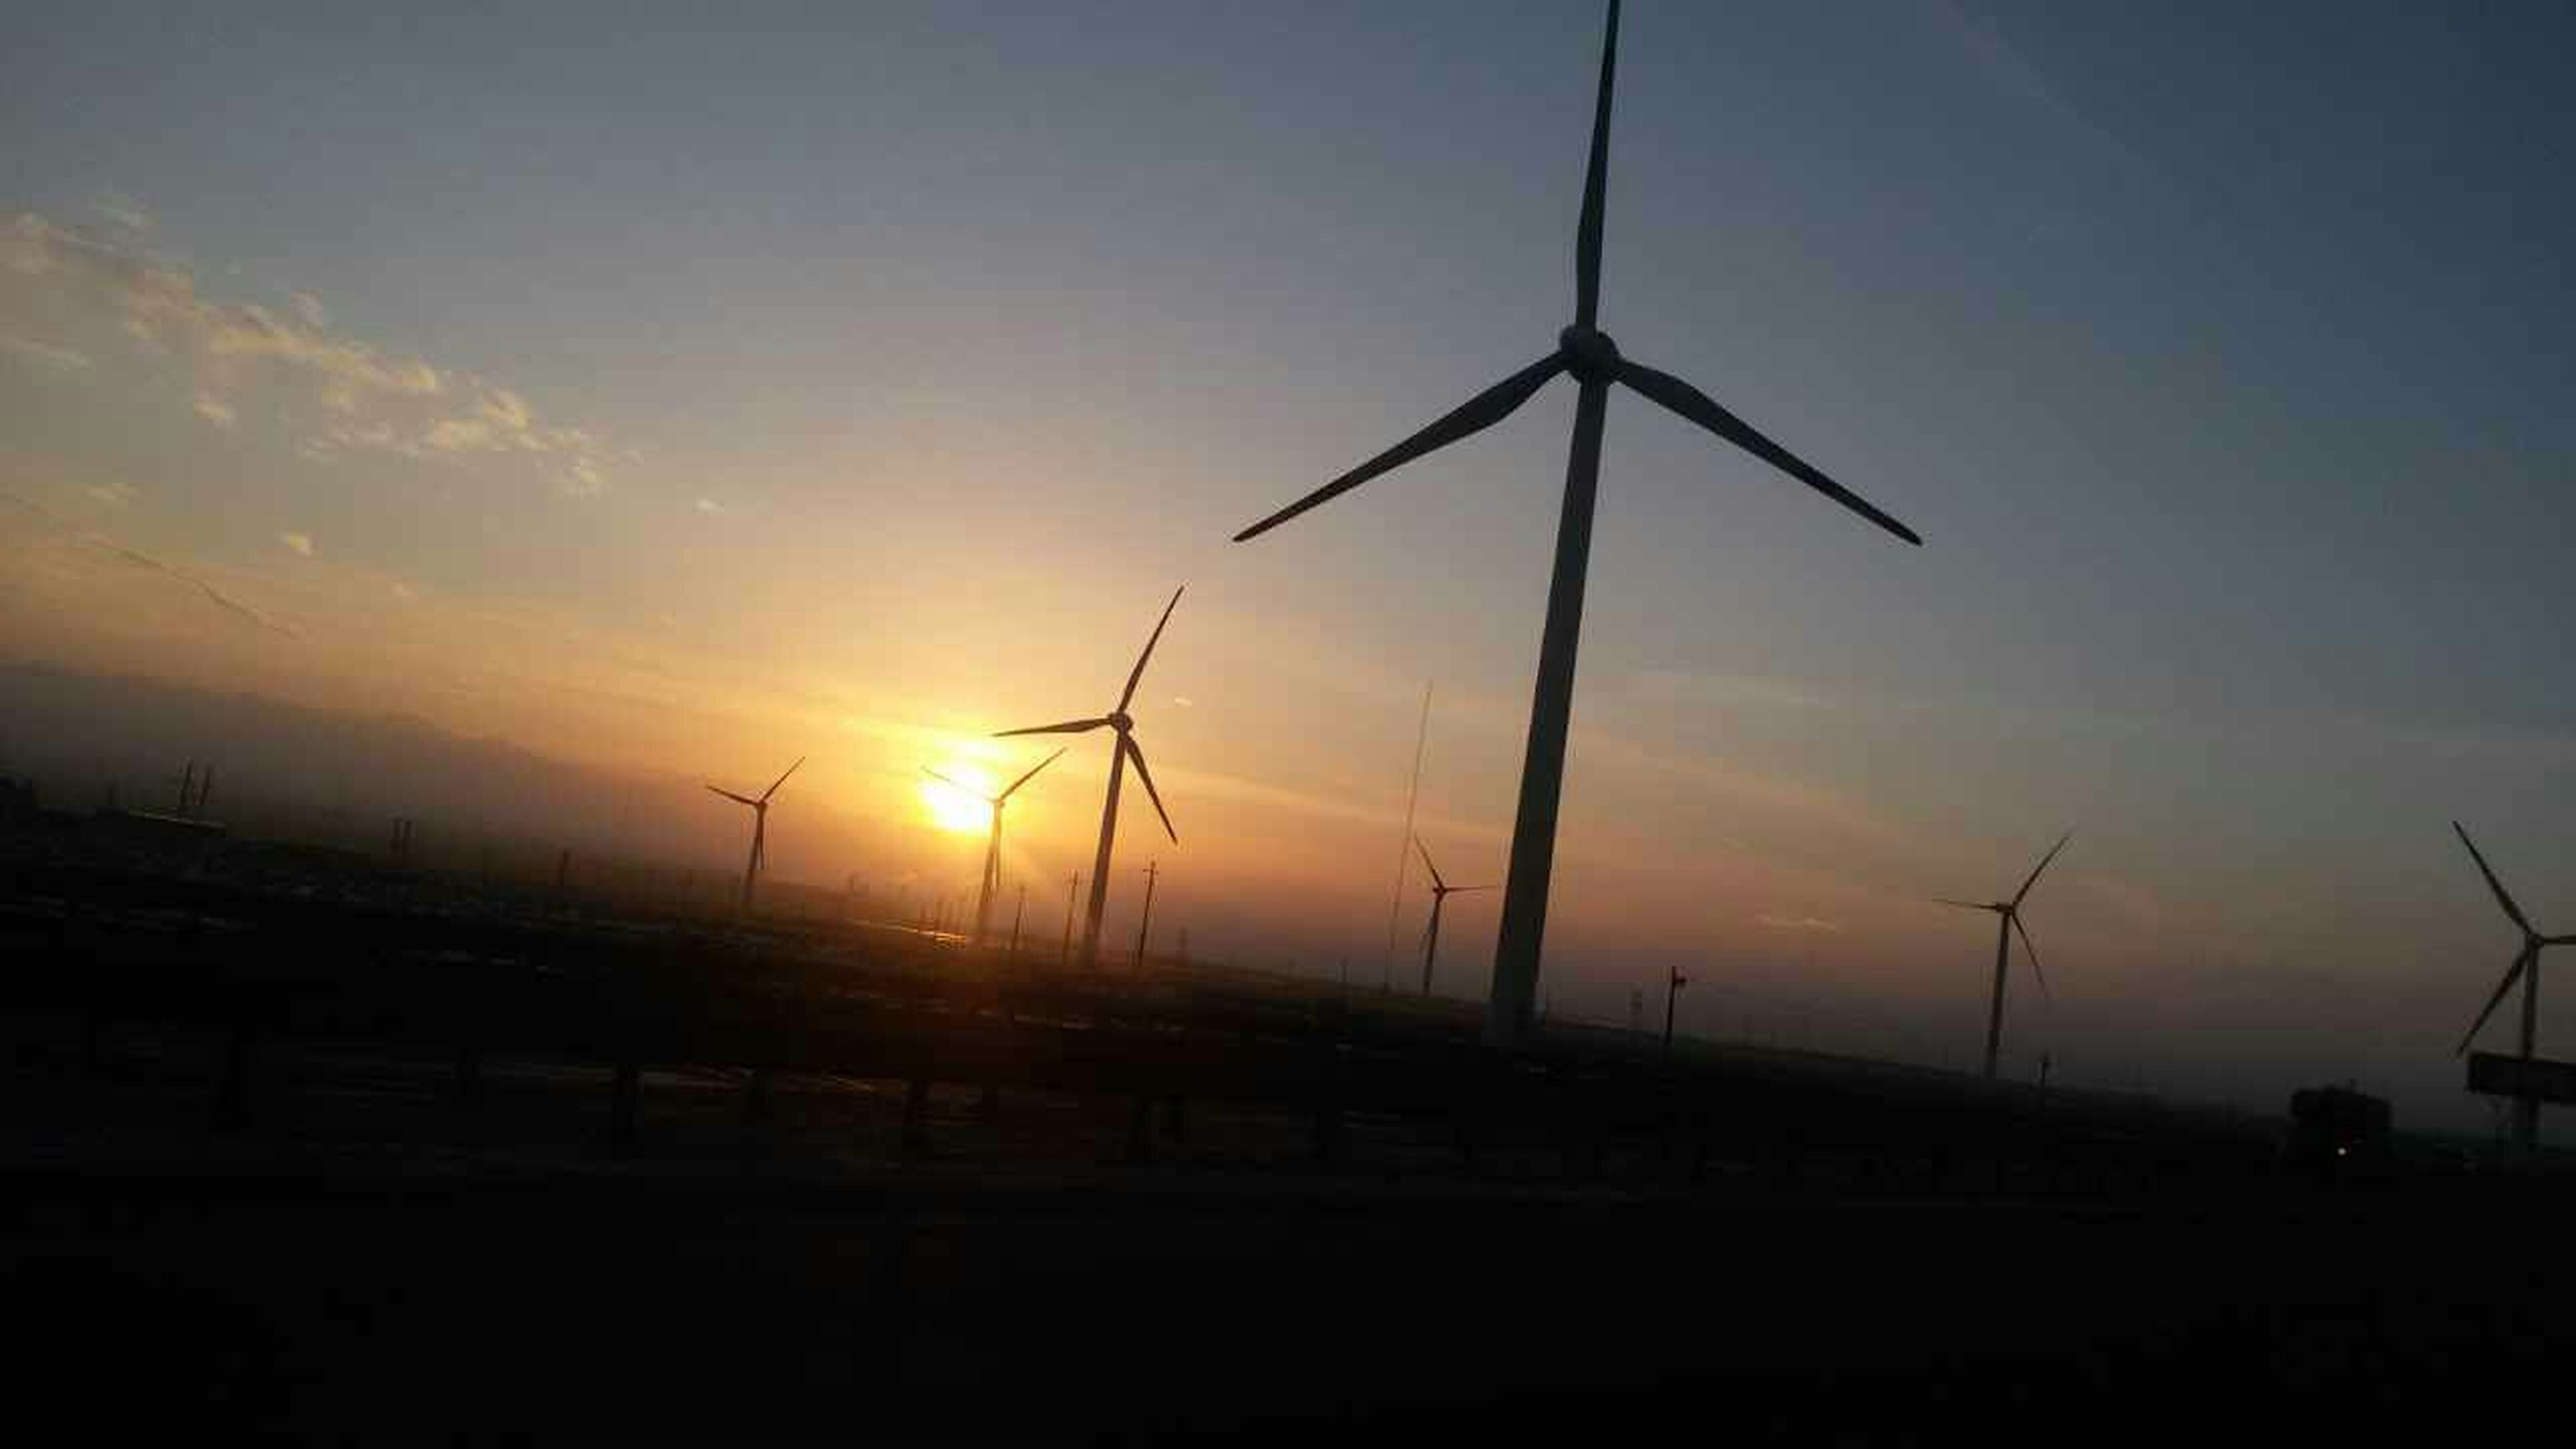 sunset, silhouette, fuel and power generation, sky, wind turbine, sun, alternative energy, wind power, environmental conservation, landscape, orange color, windmill, nature, tranquility, renewable energy, transportation, scenics, tranquil scene, beauty in nature, electricity pylon